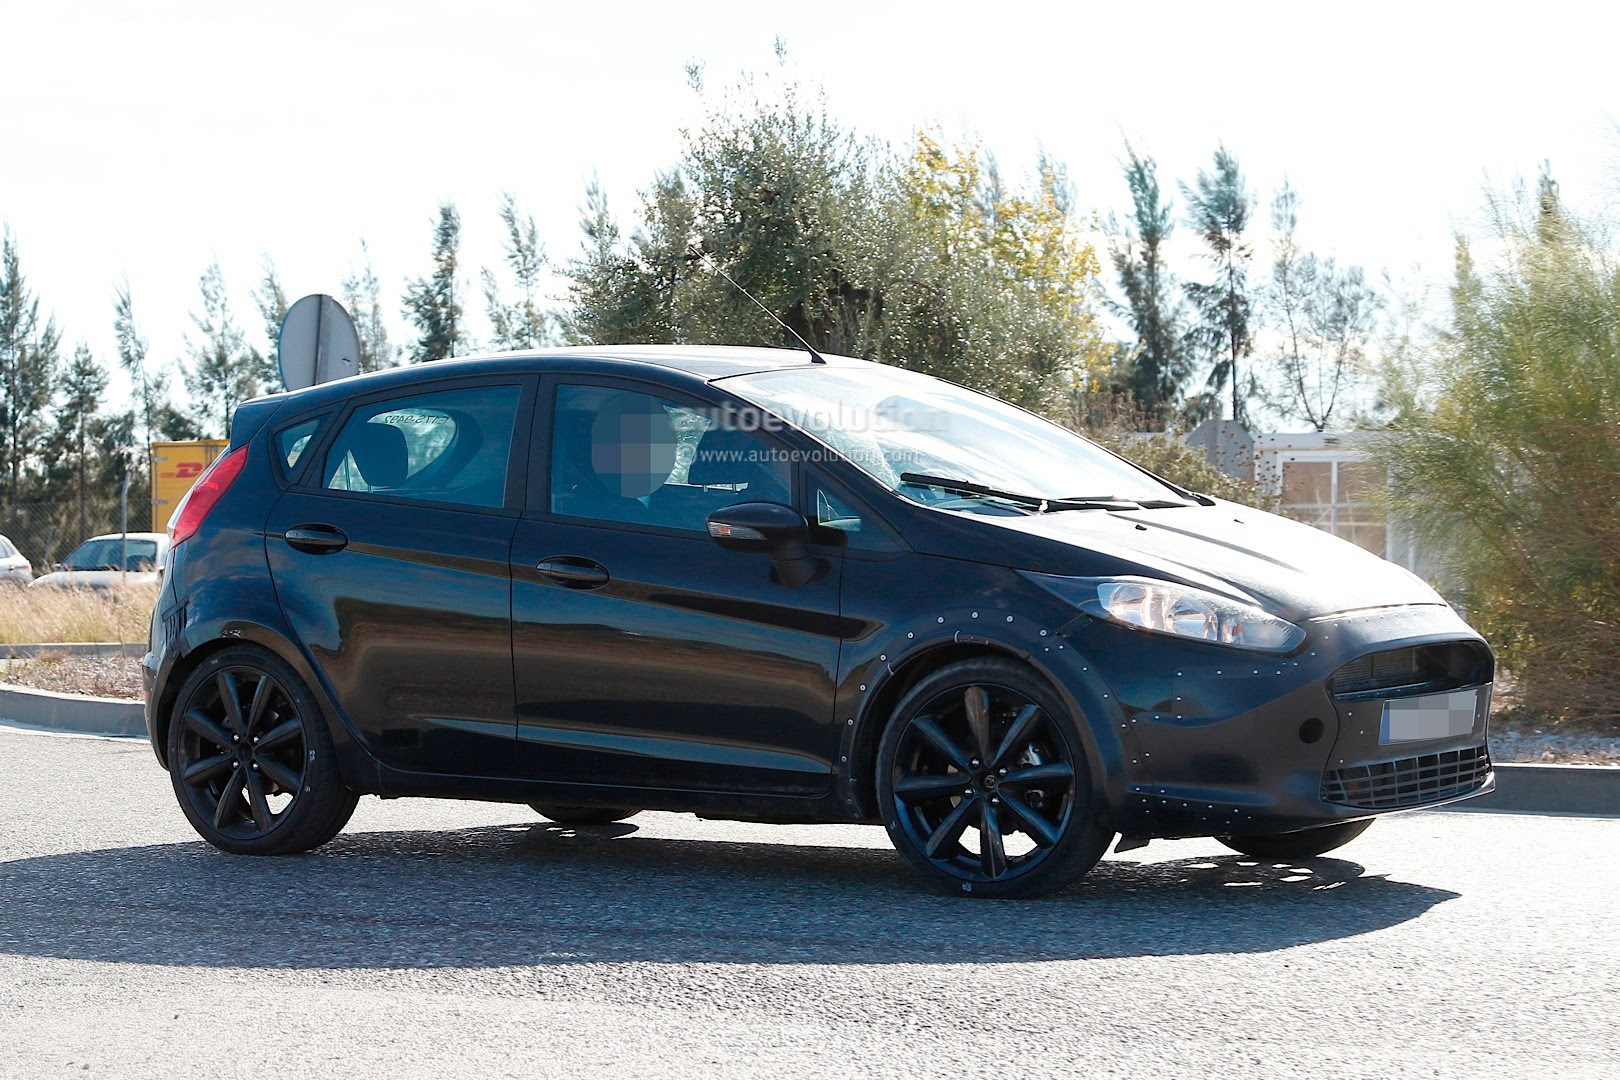 Ford Fiesta 2017 Mule Spied Pictures | 2017 - 2018 Best Car Reviews